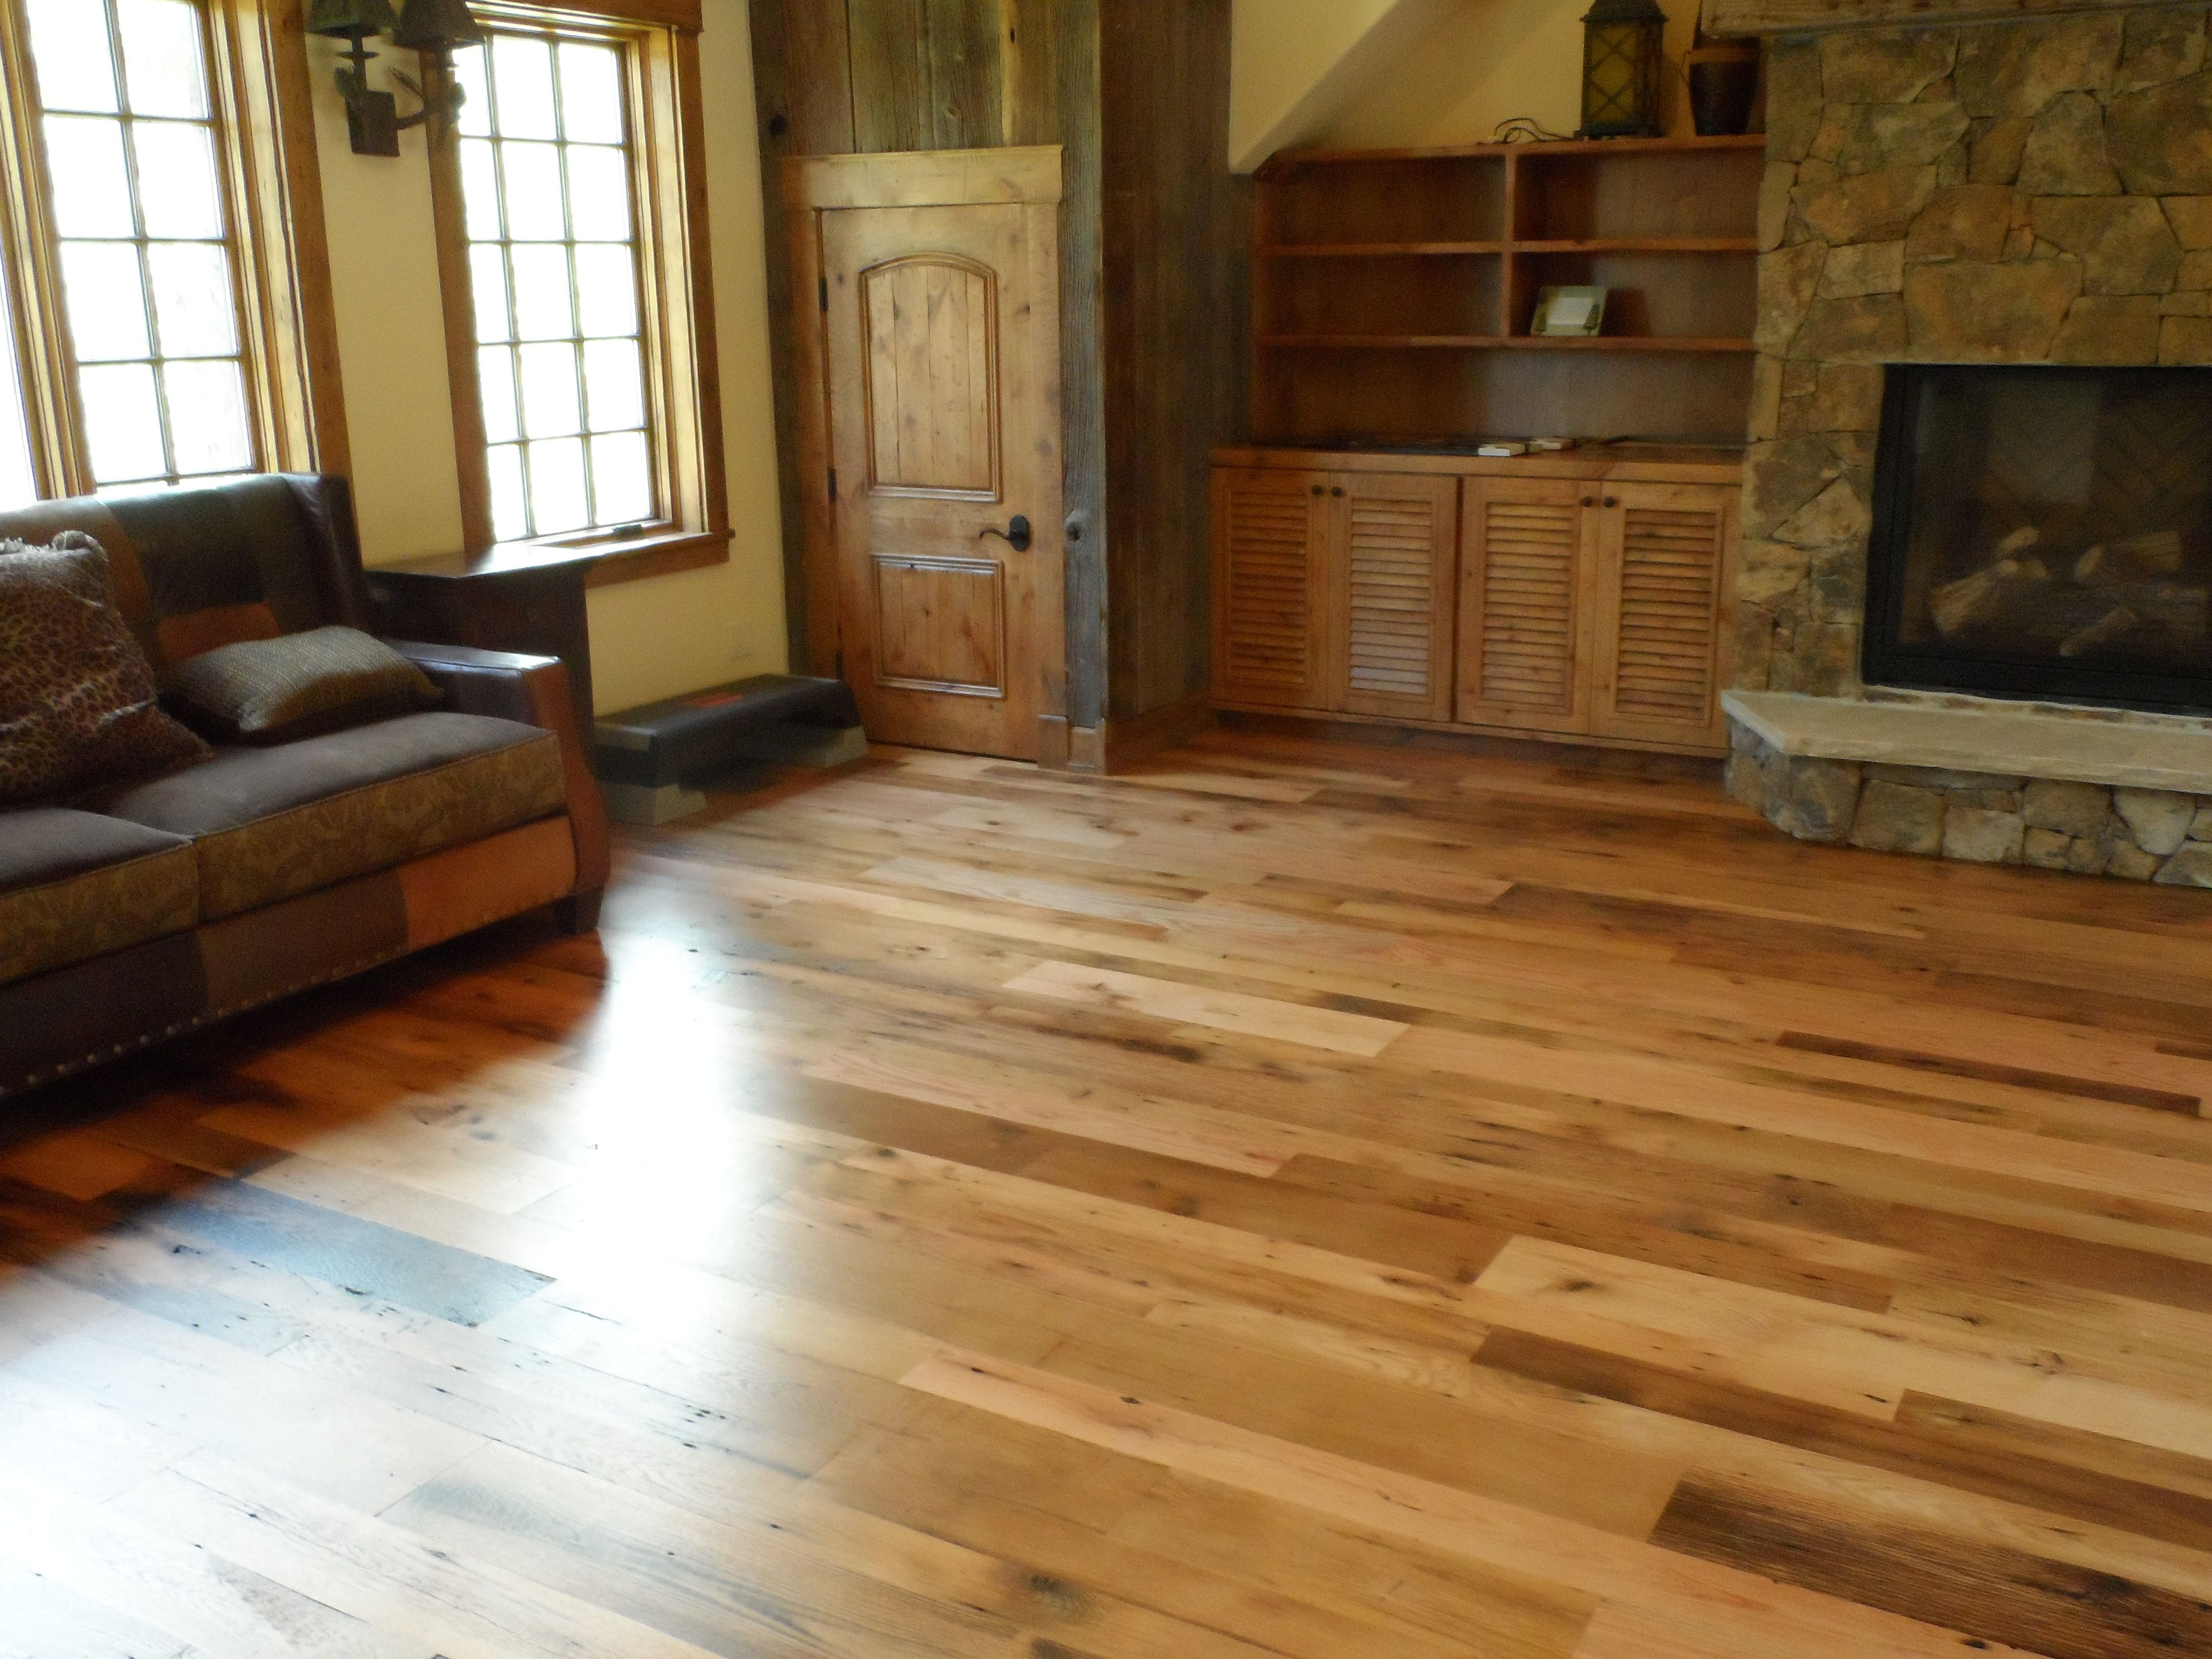 discount hardwood floors and molding of custom hardwood floors trim and cabinets done by timberline framers pertaining to custom hardwood floors trim and cabinets done by timberline framers inc in pagosa springs